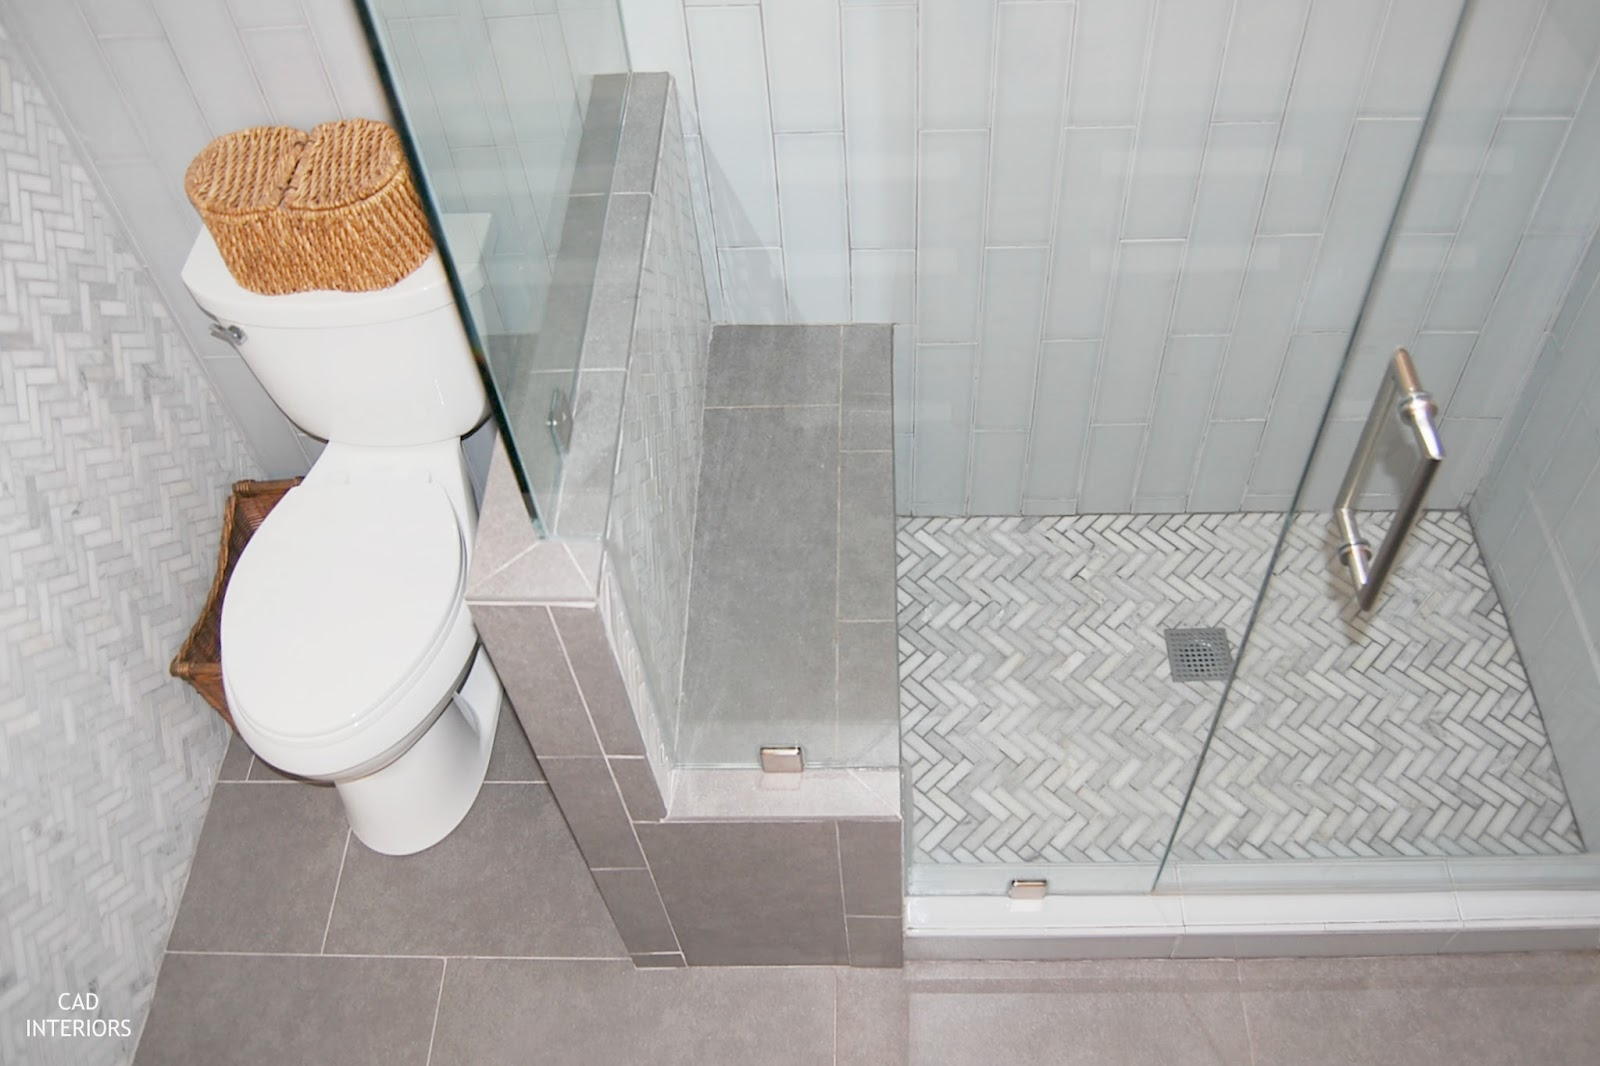 Luxury hidden camode pony wall shower bench shower frameless glass shower door vertical x subway tile herringbone